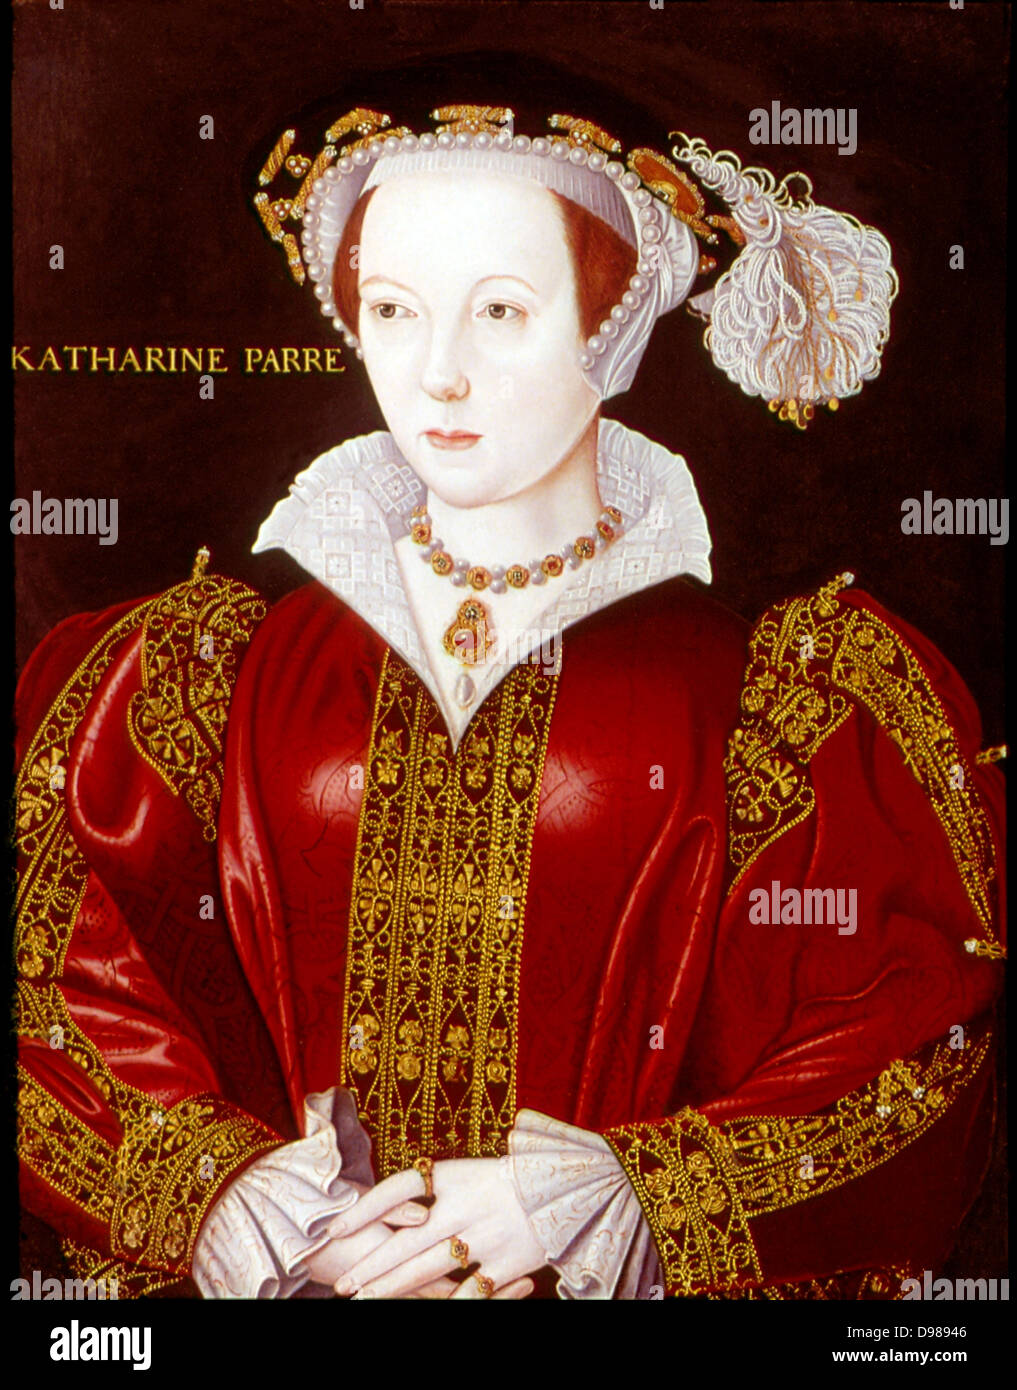 Catherine Parr (1512-1548). Sixth and last wife of Henry VIII. Anonymous portrait c1545 . - Stock Image